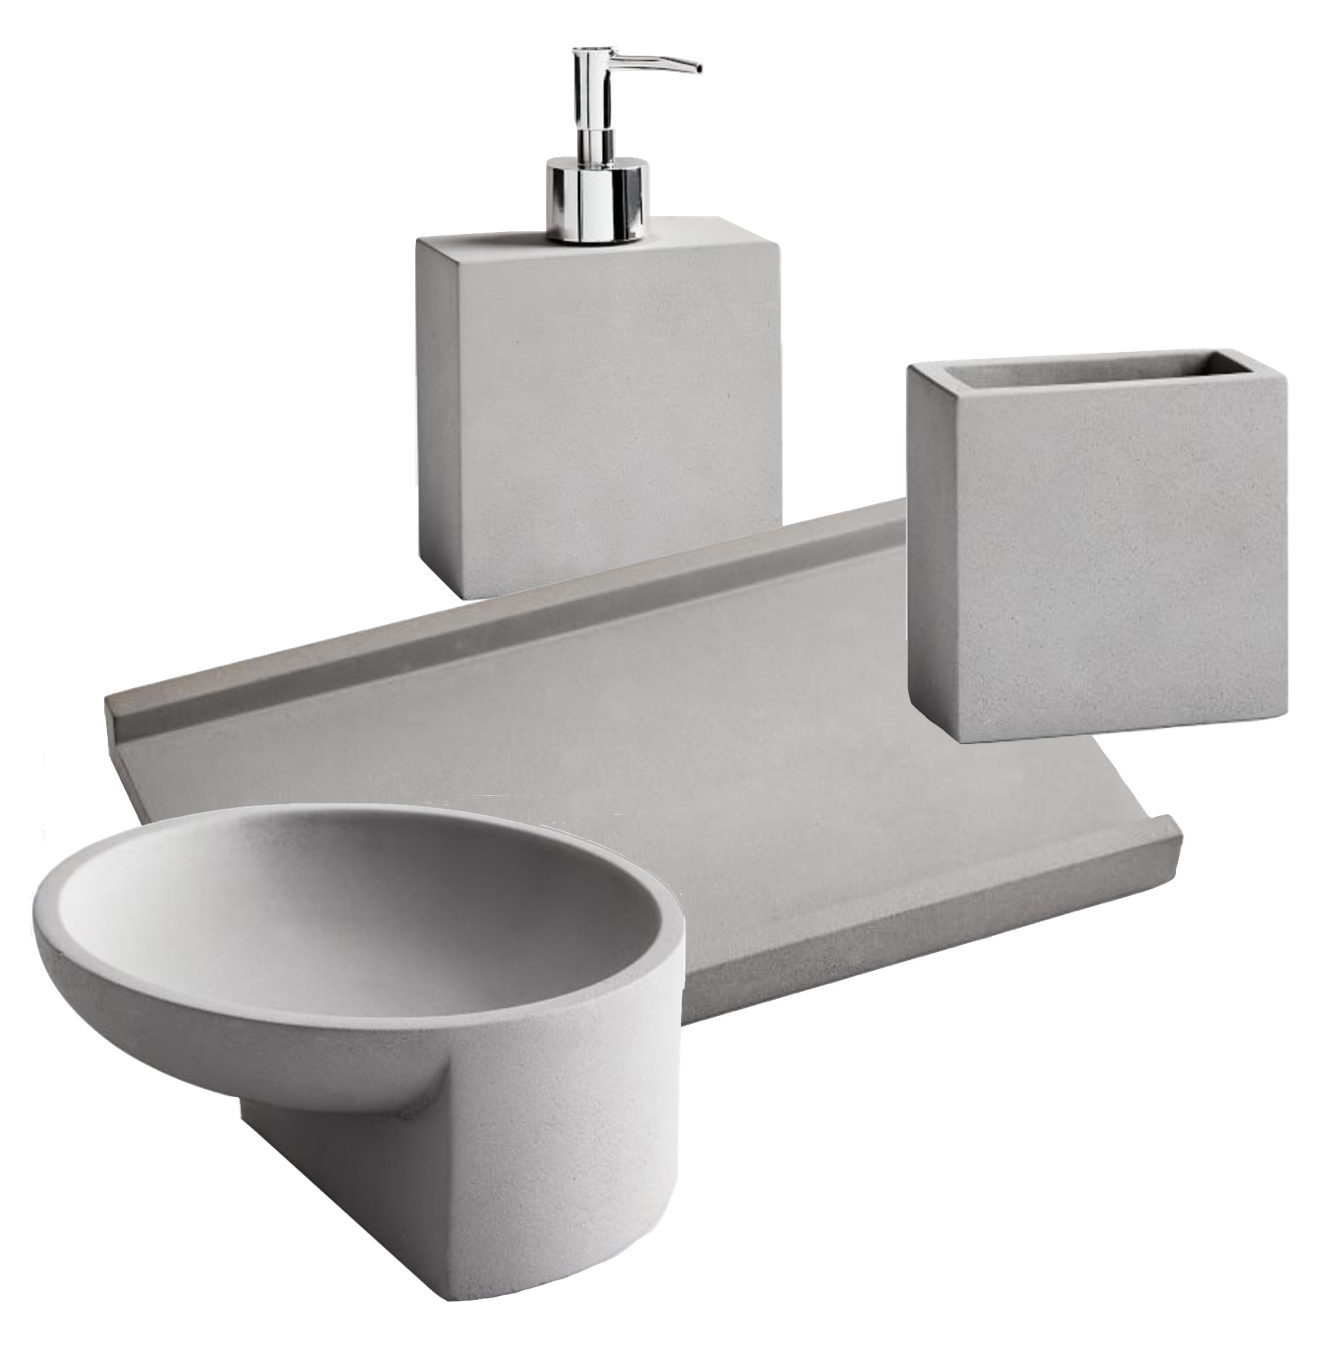 Concrete Bathroom Accessory Collection